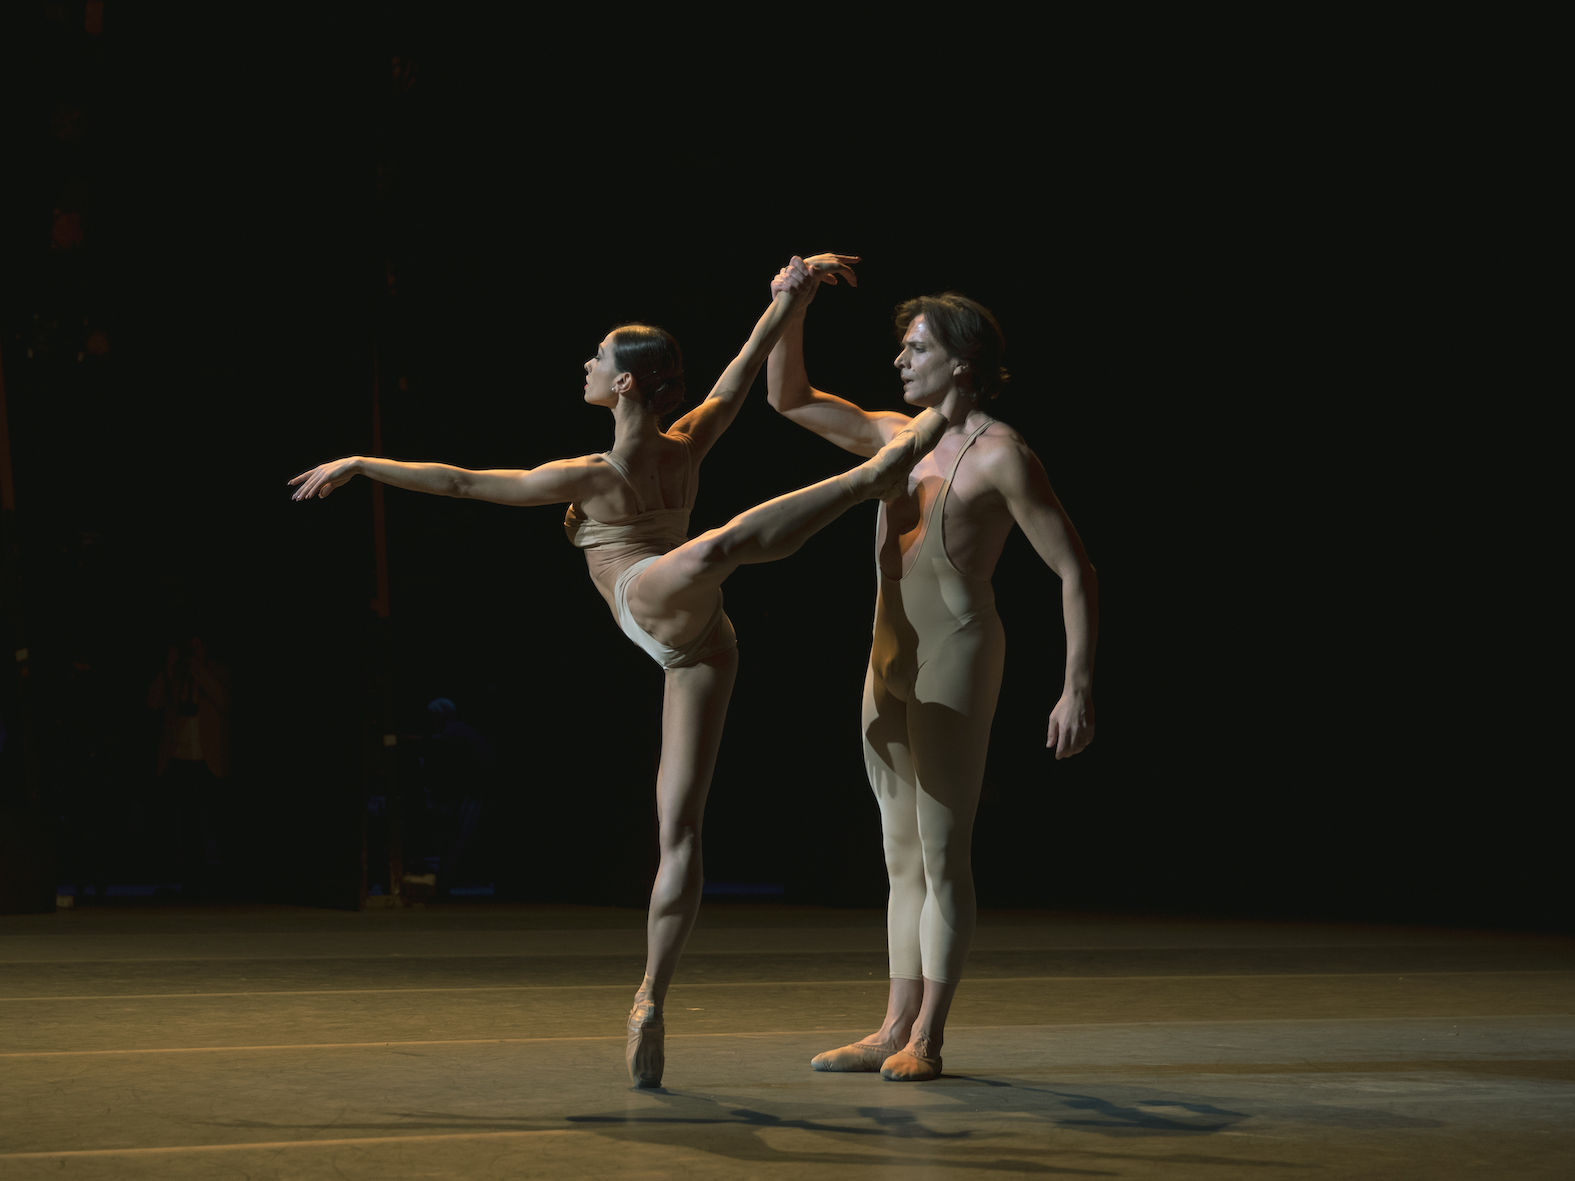 Luisa Leluzzi and Giuseppe Picone in Elegie. Photo Andre Uspenski